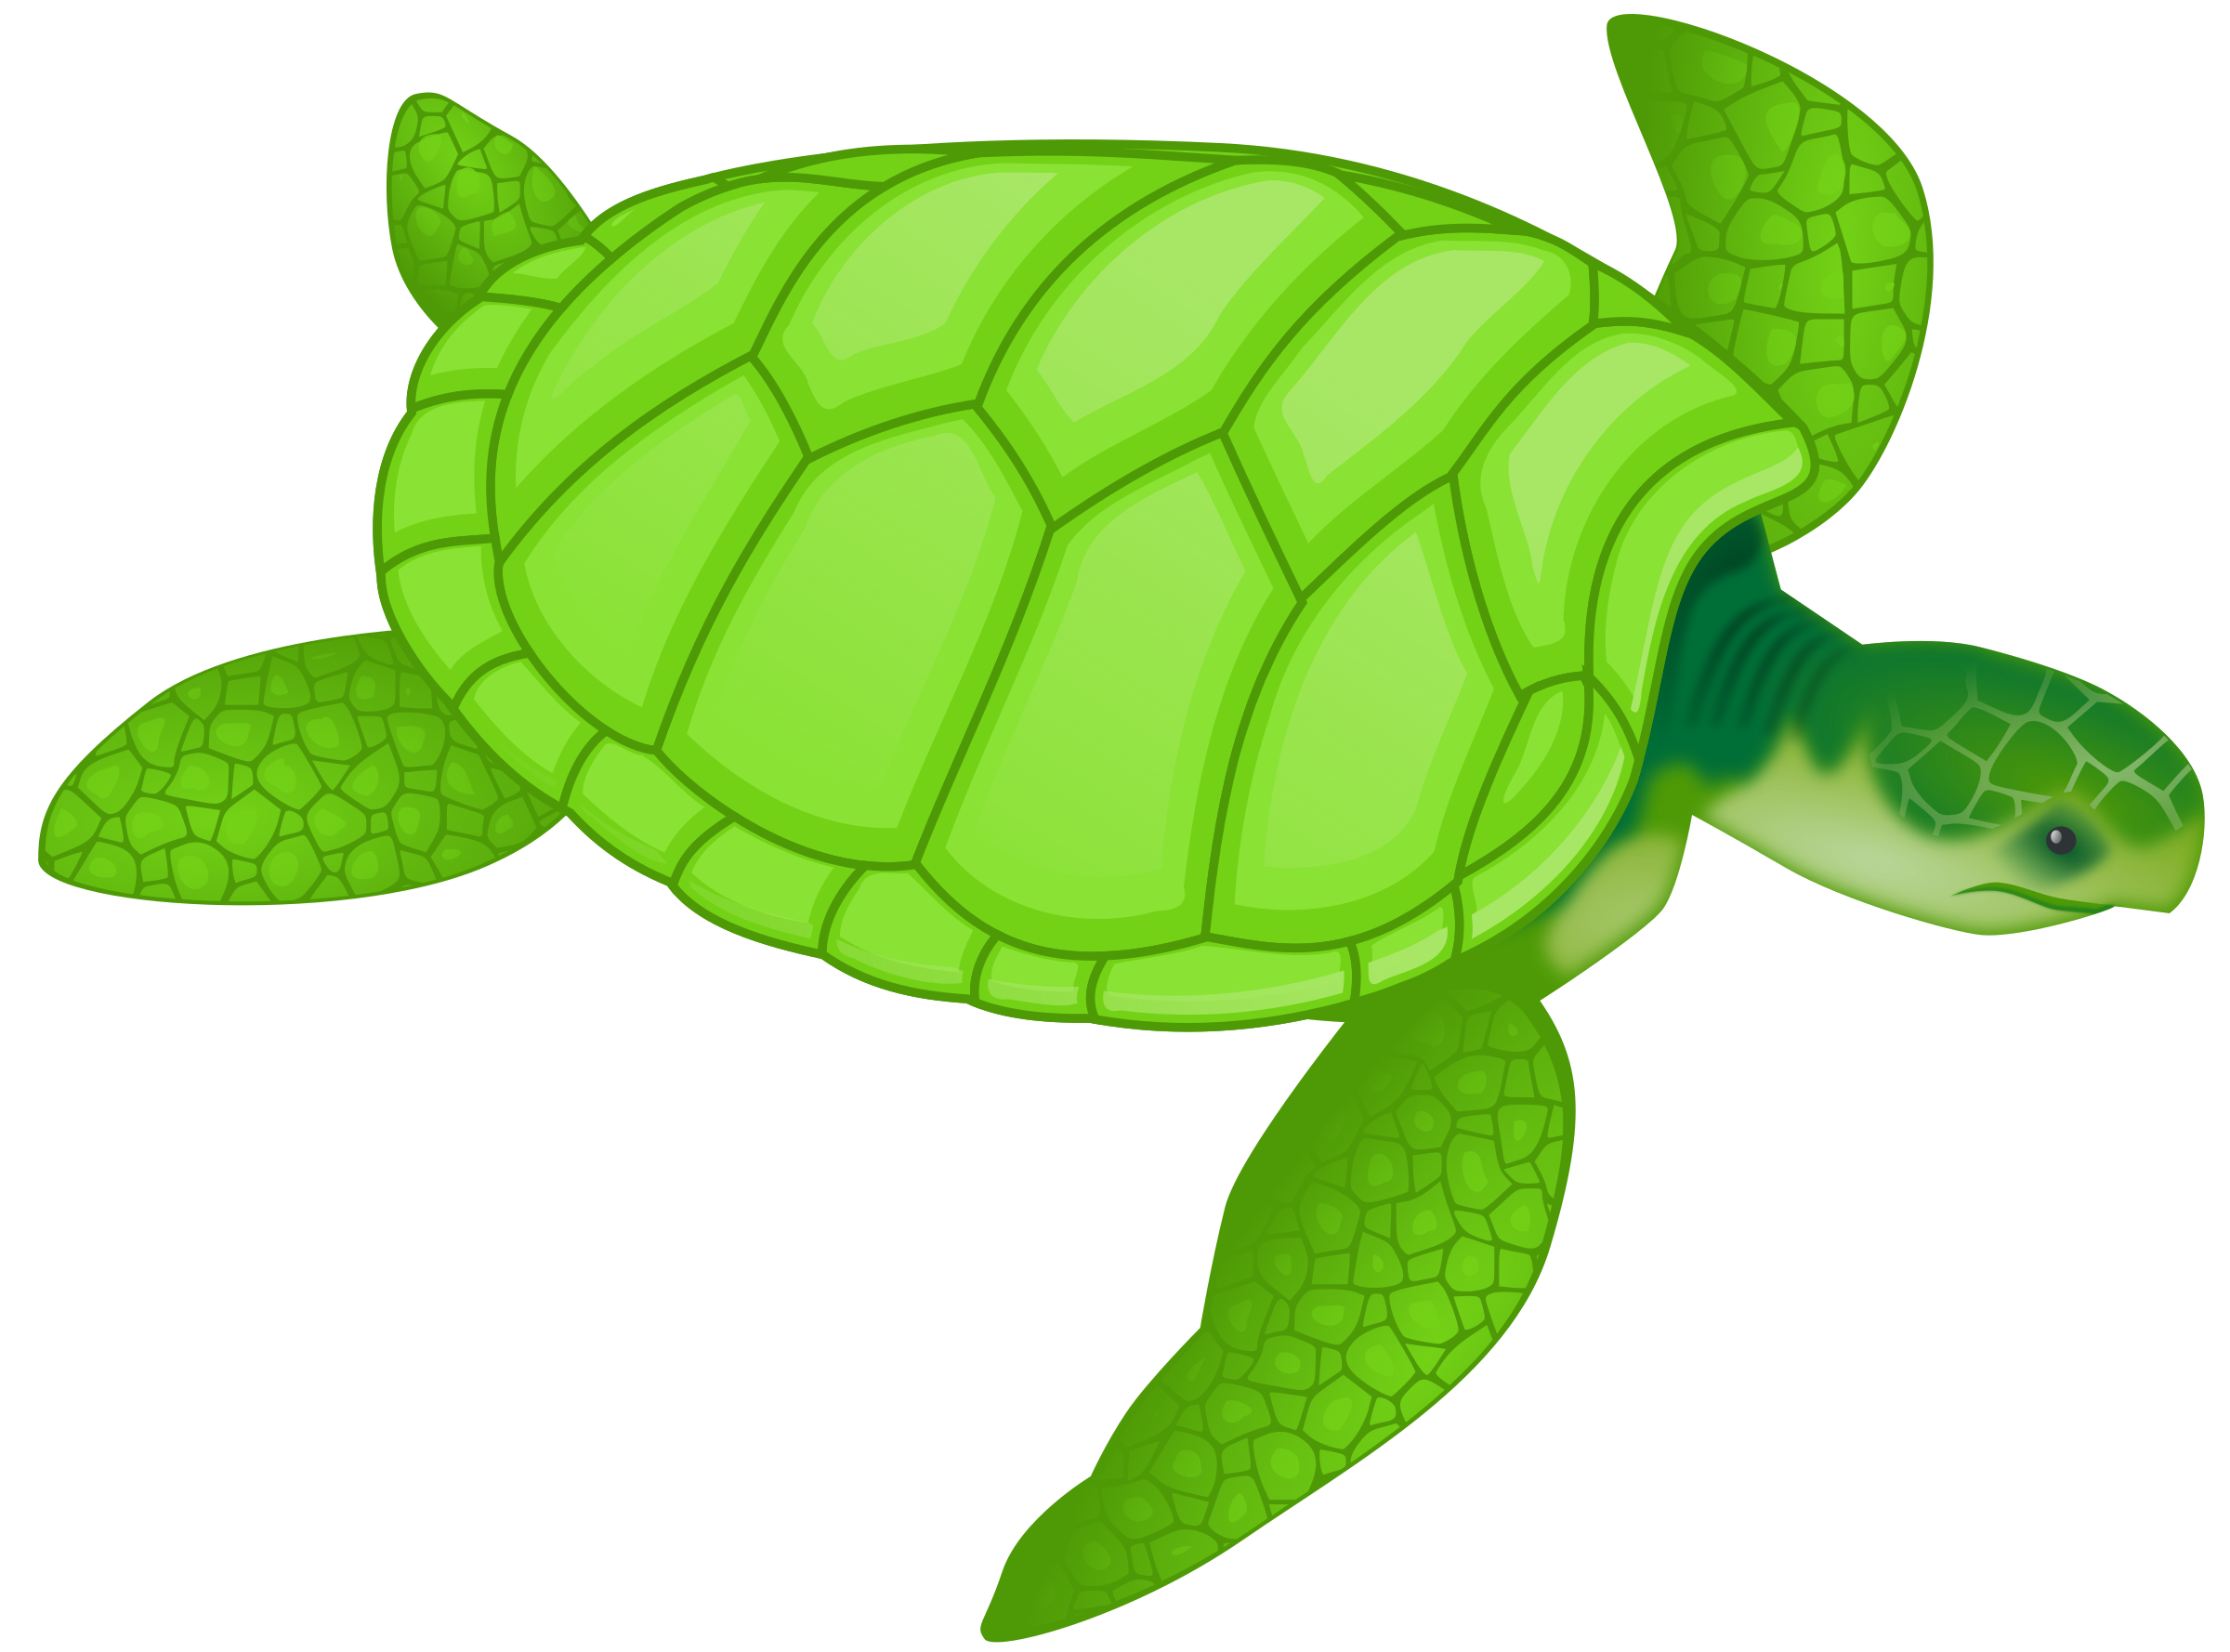 Green sea. Clipart turtle transparent background